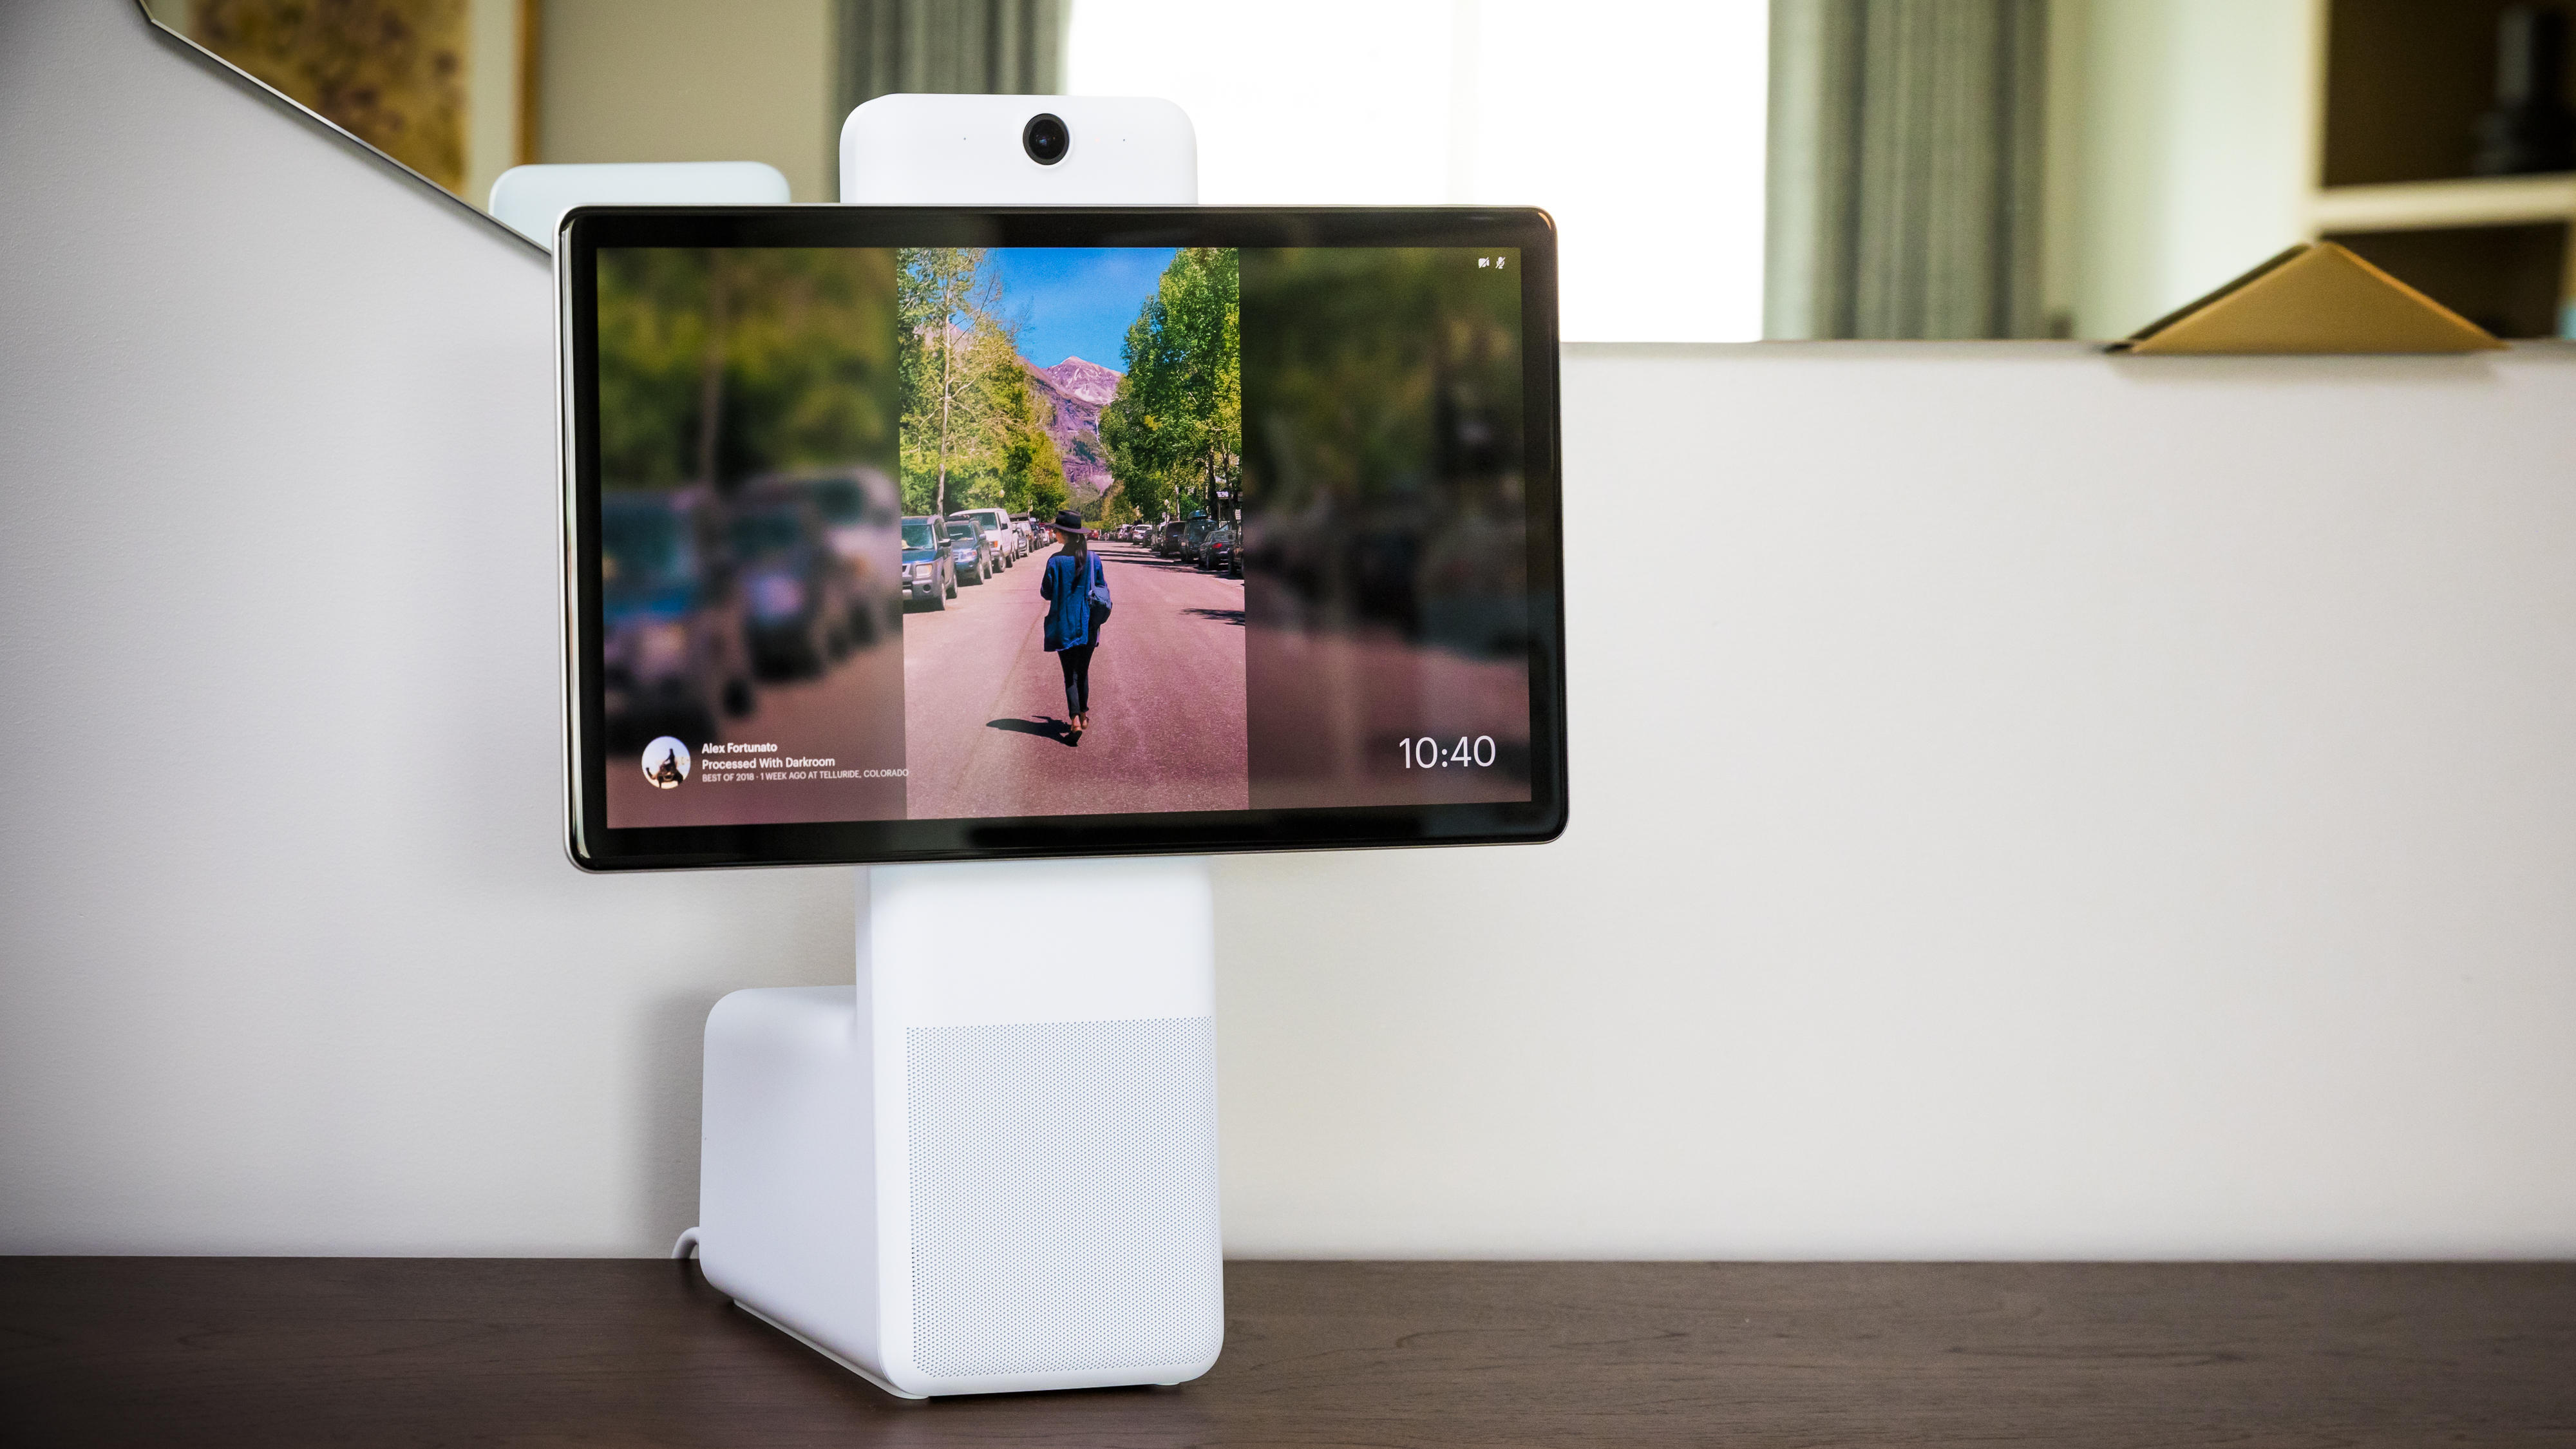 facebook-portal-plus-messenger-chat-2306